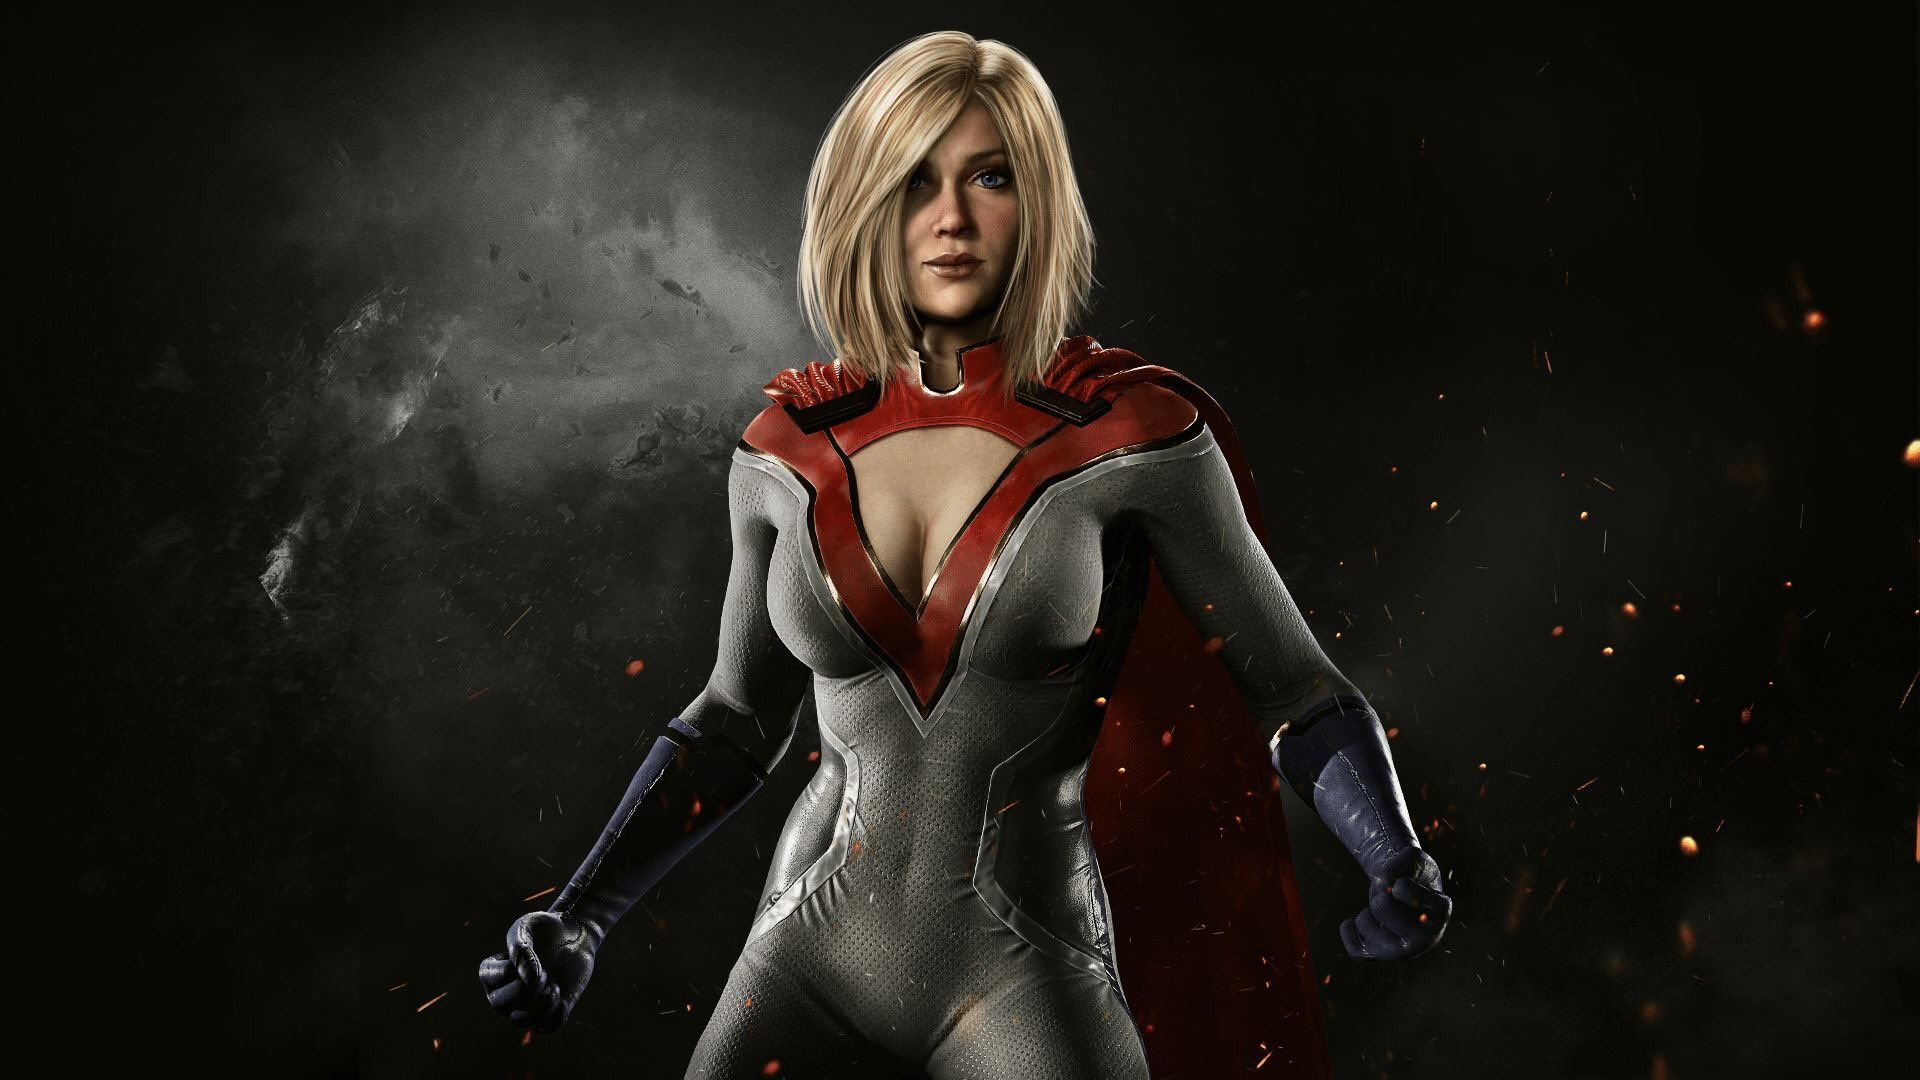 Injustice 2 Supergirl Images Power Girl Comics Power Girl